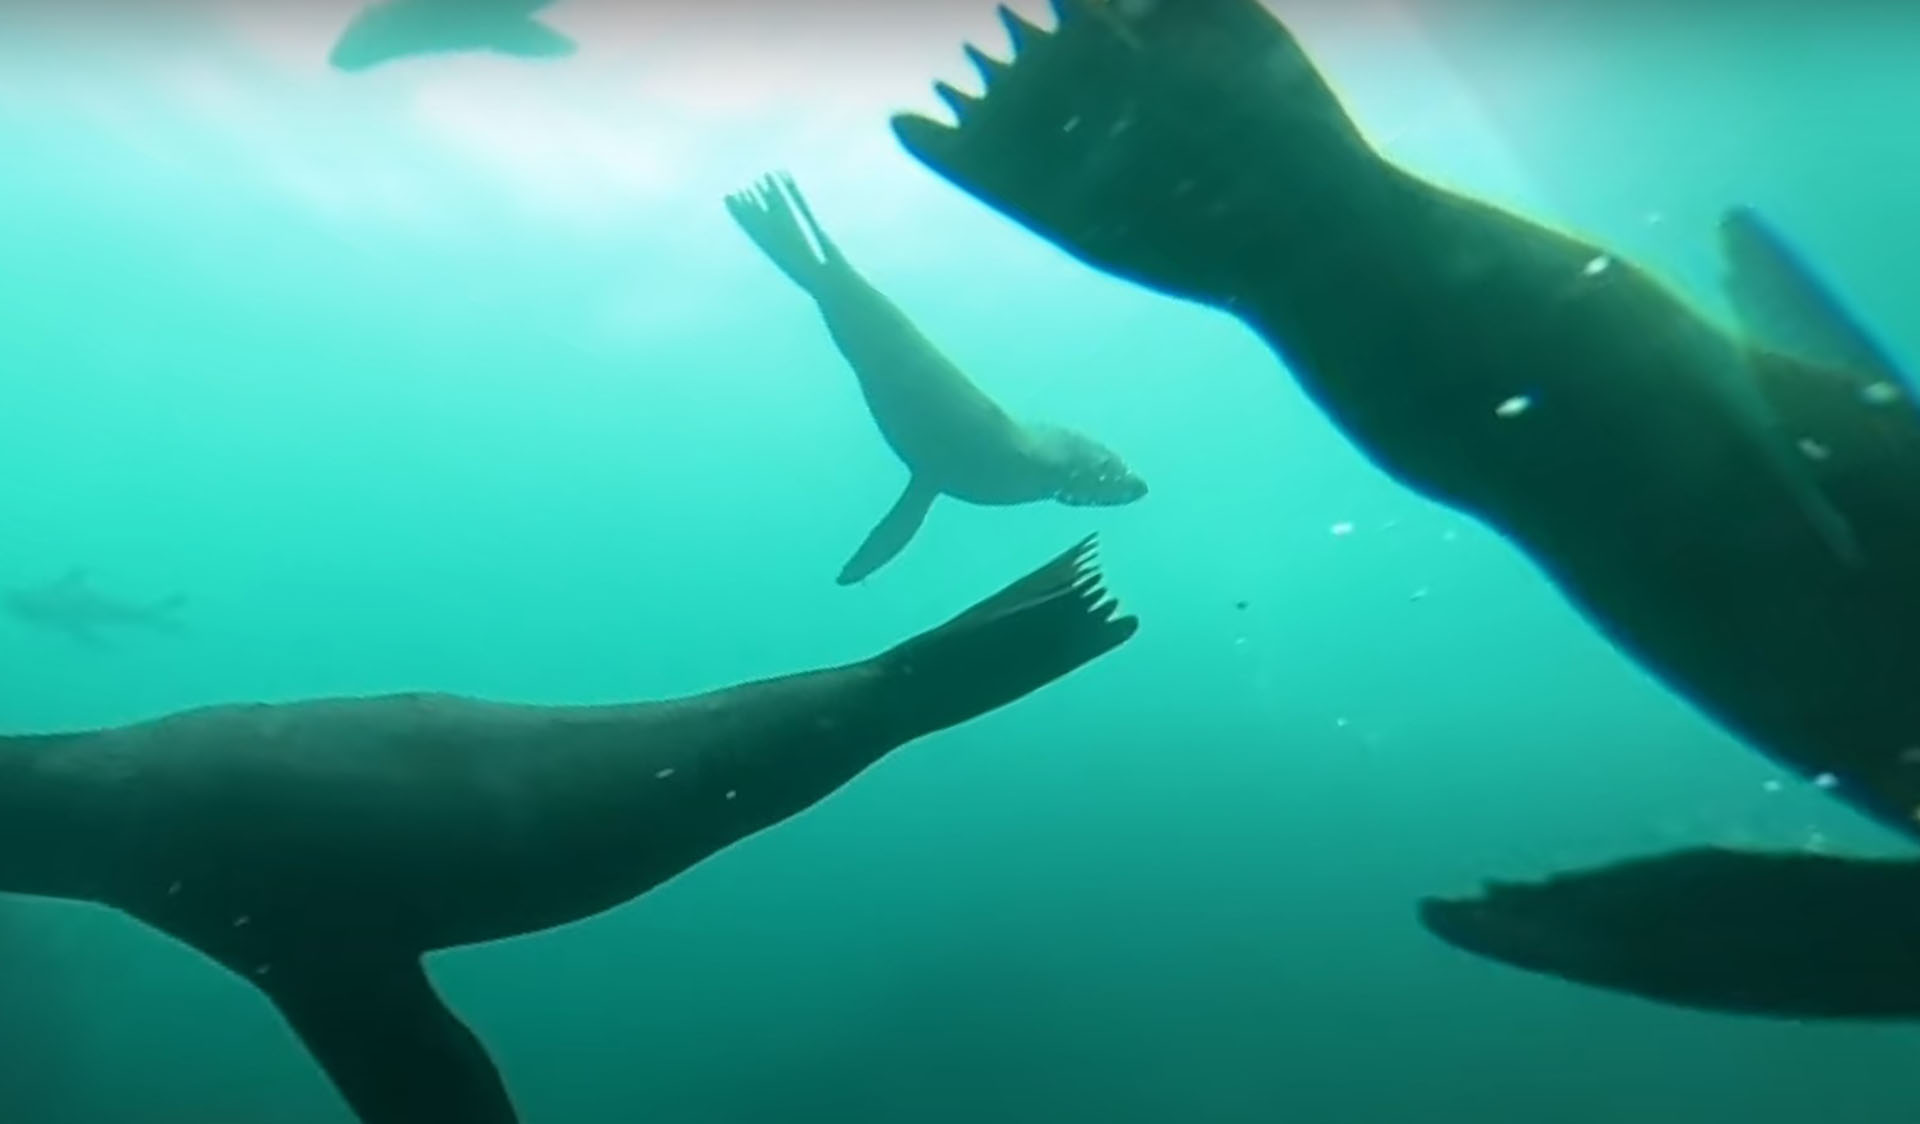 Still image from Diving with Long-nosed Fur Seals at Gabo Island 360 video part 2 video.